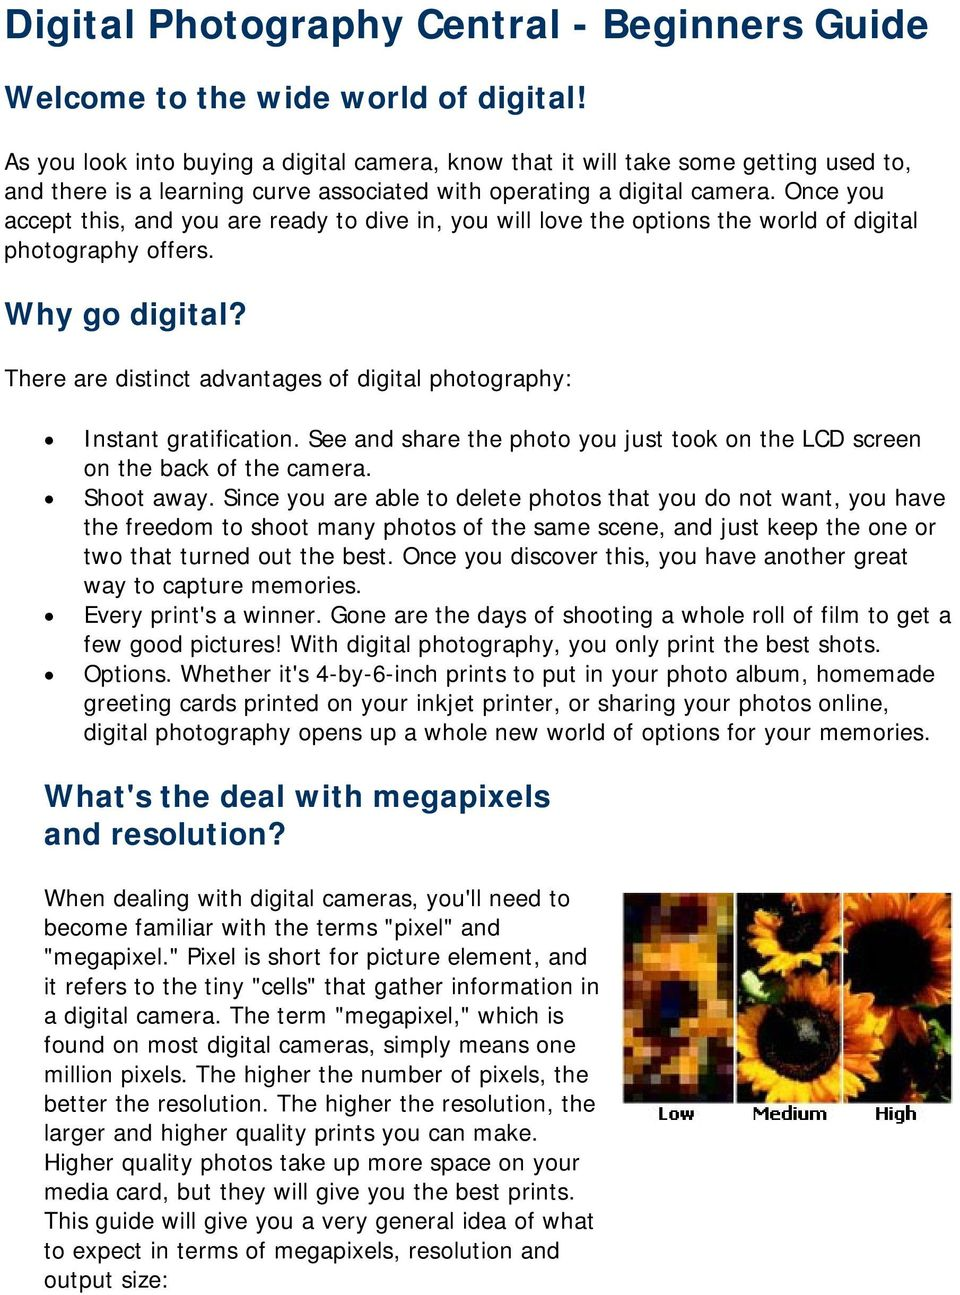 Once you accept this, and you are ready to dive in, you will love the options the world of digital photography offers. Why go digital?